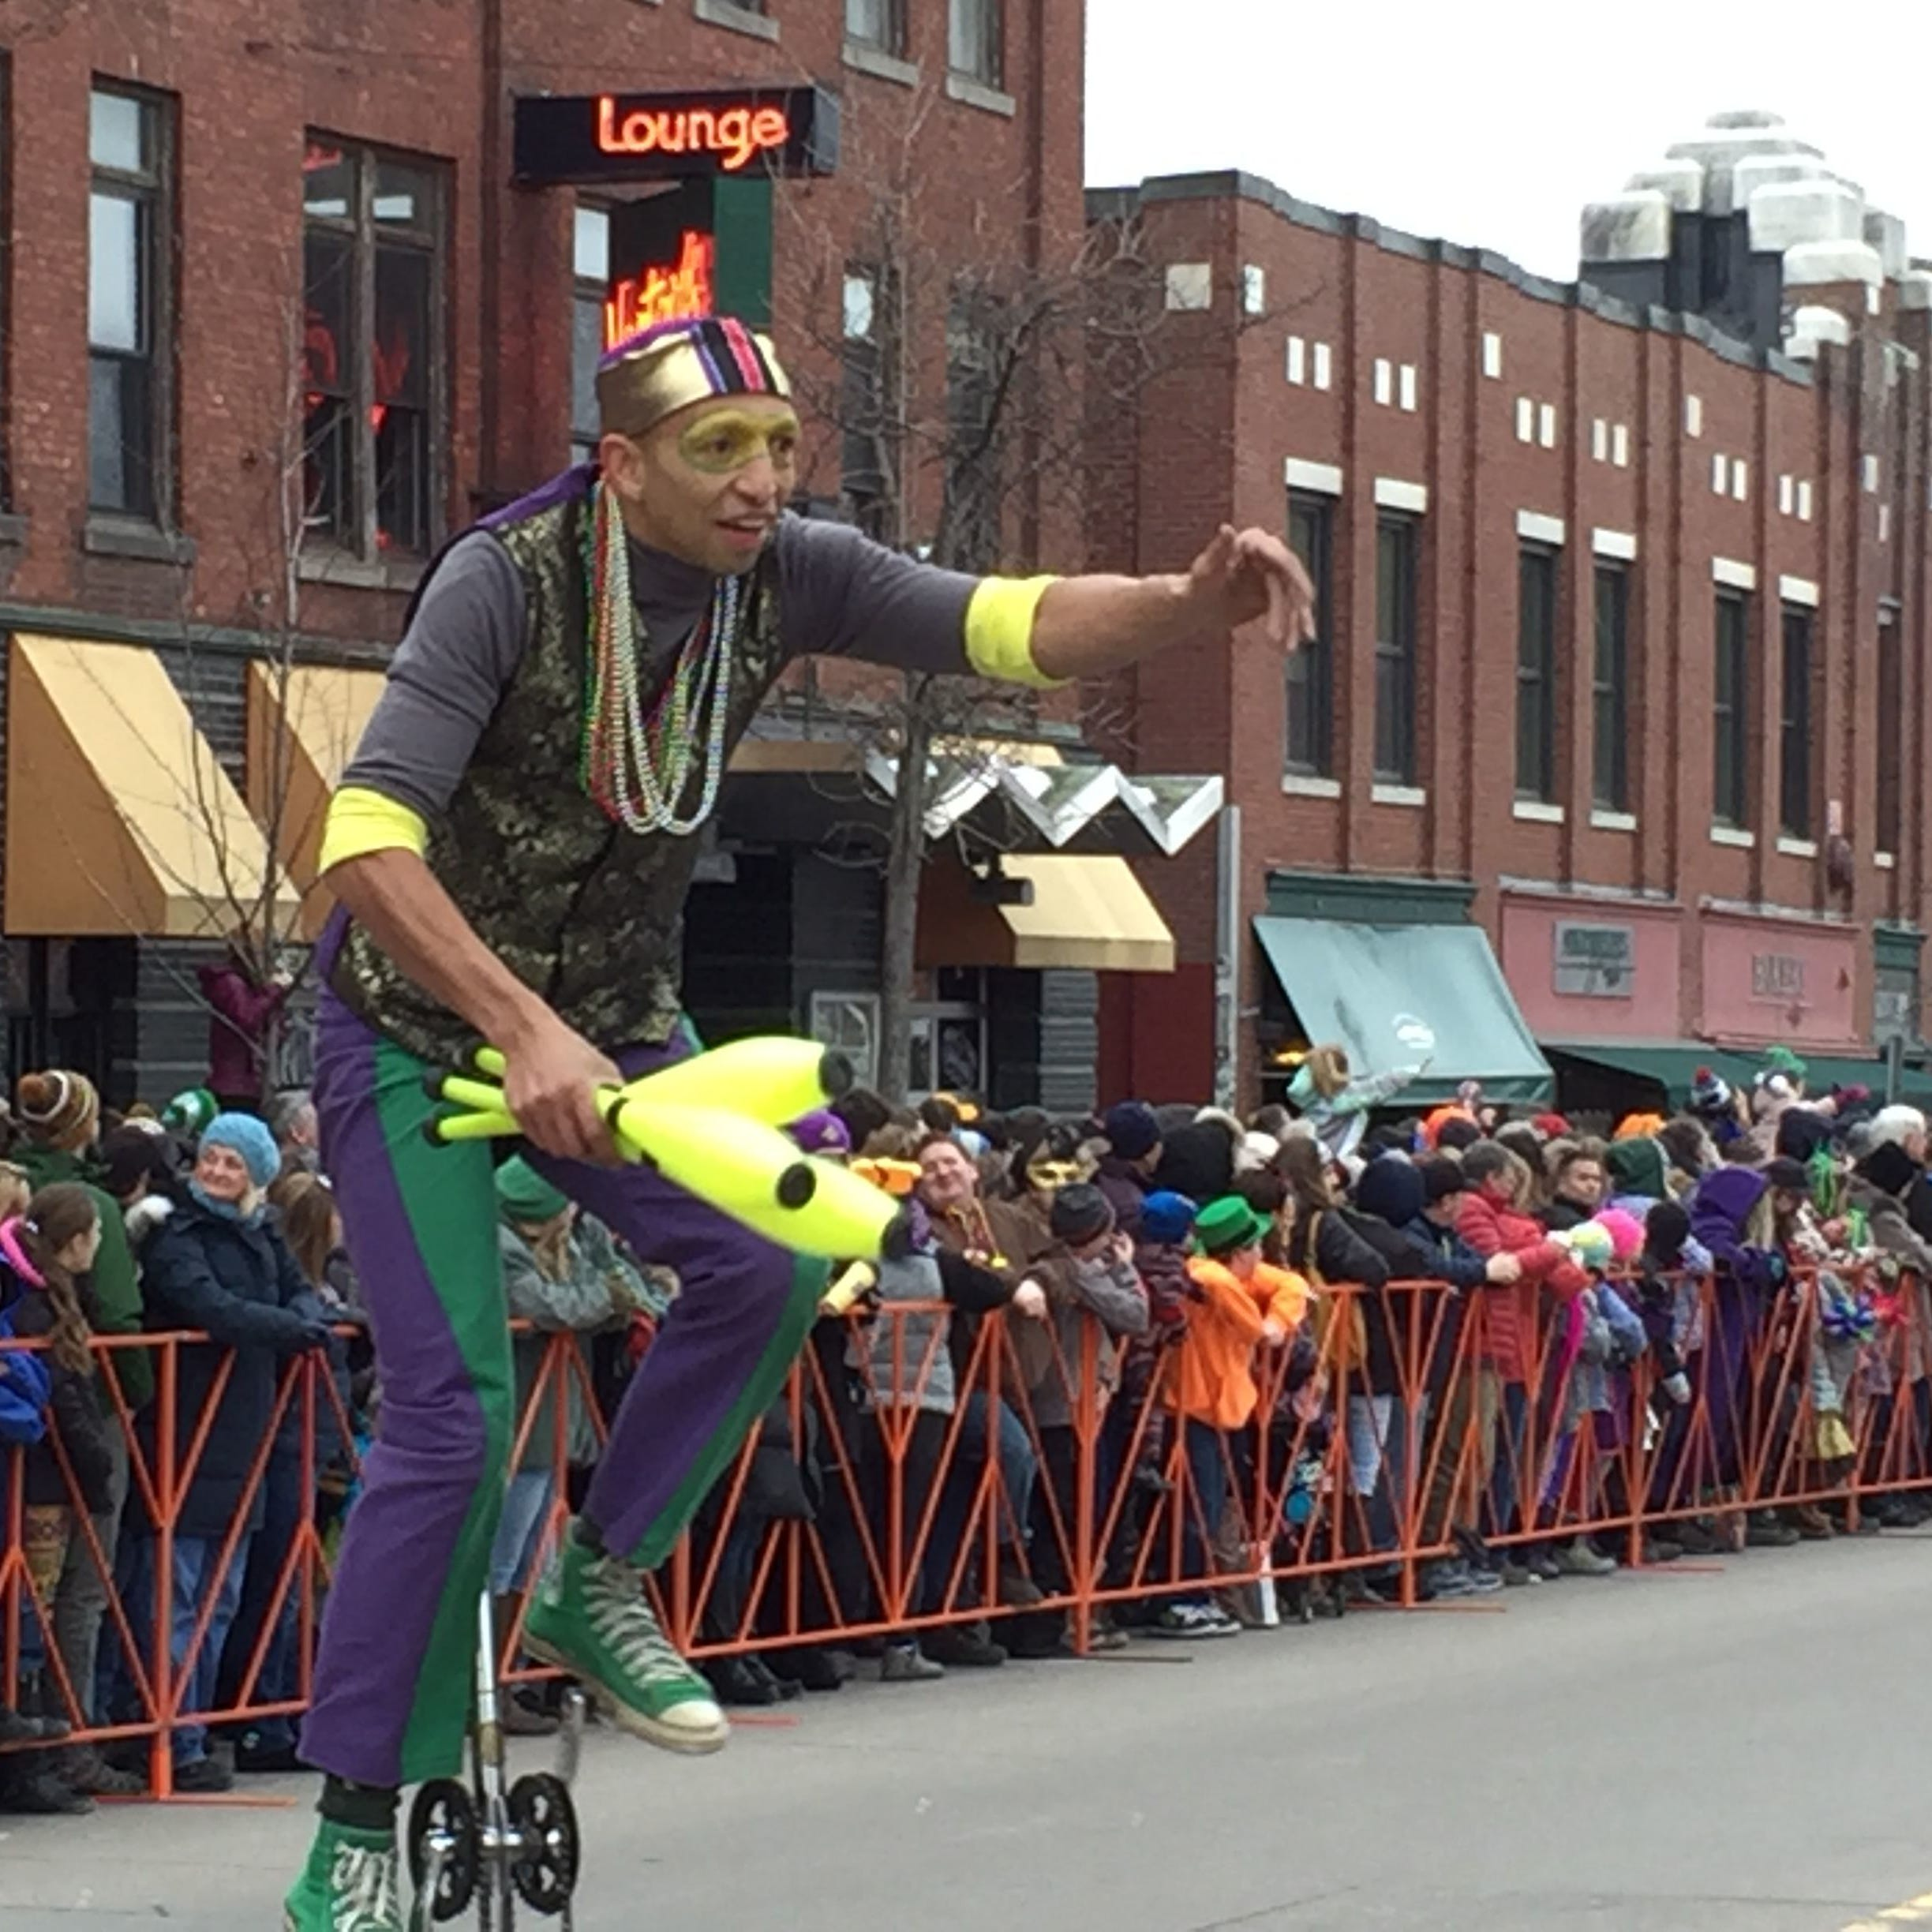 Burlington's big Mardi Gras parade is no more, replaced this weekend by a street party